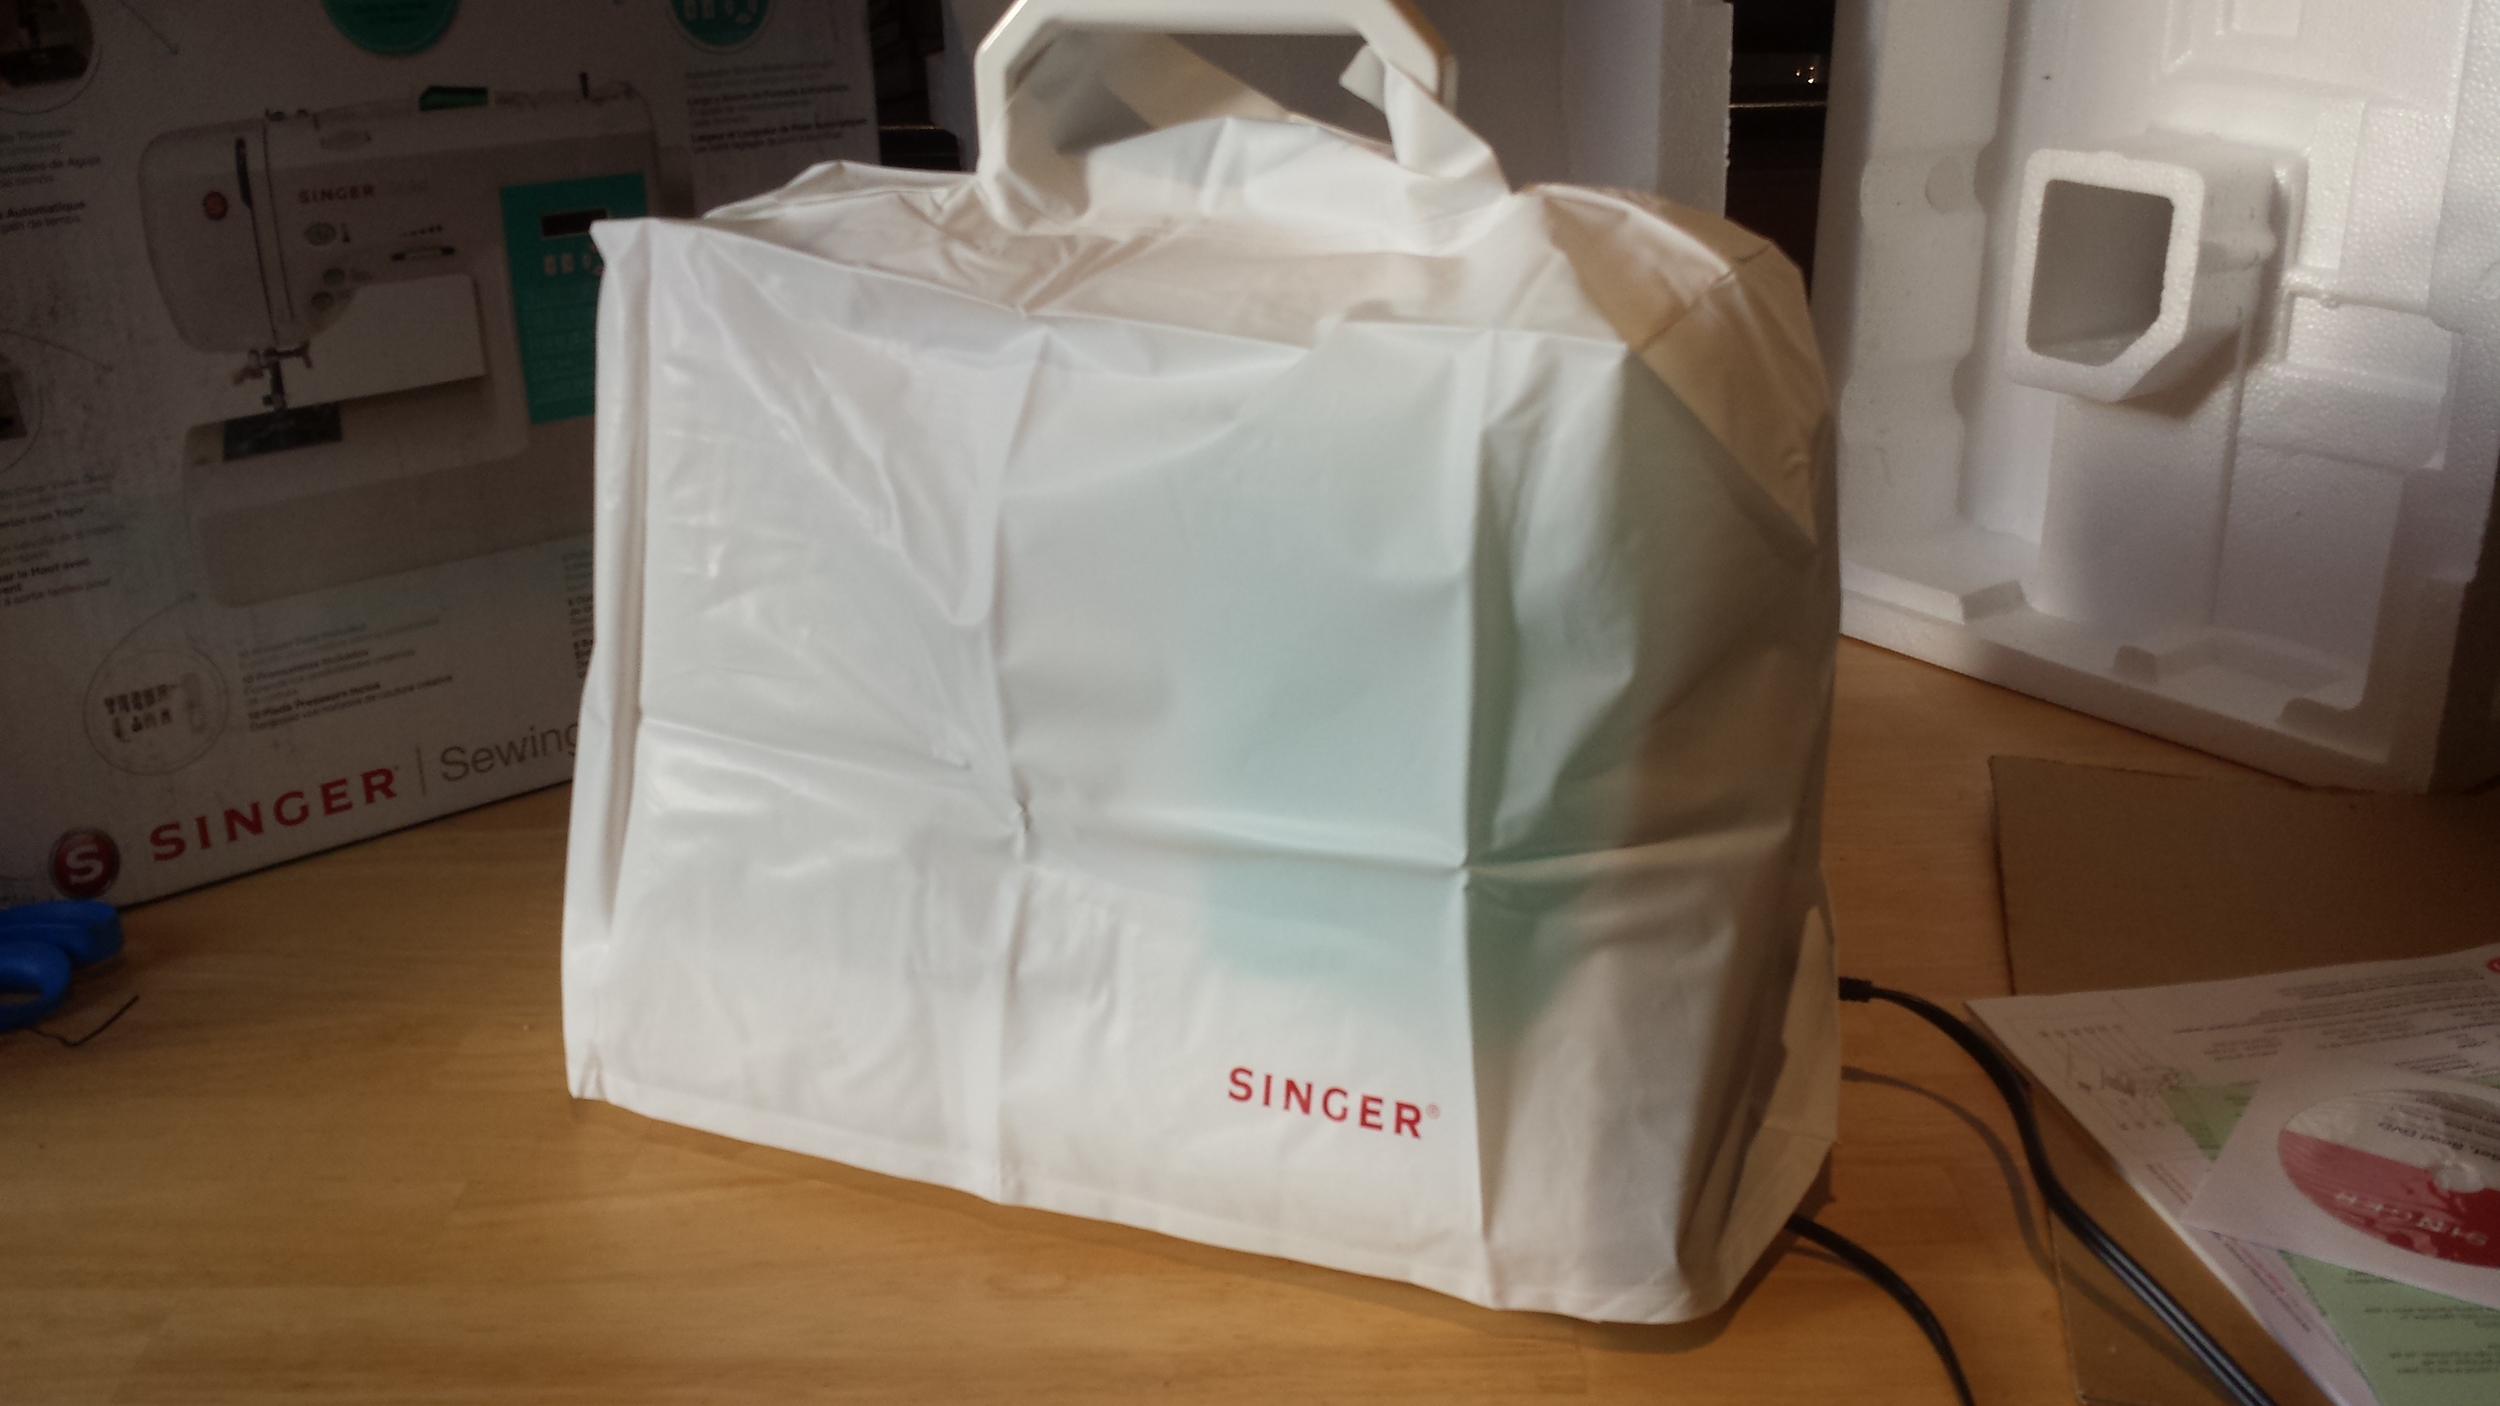 Singer 7258 sewing machine in its vinyl dust cover